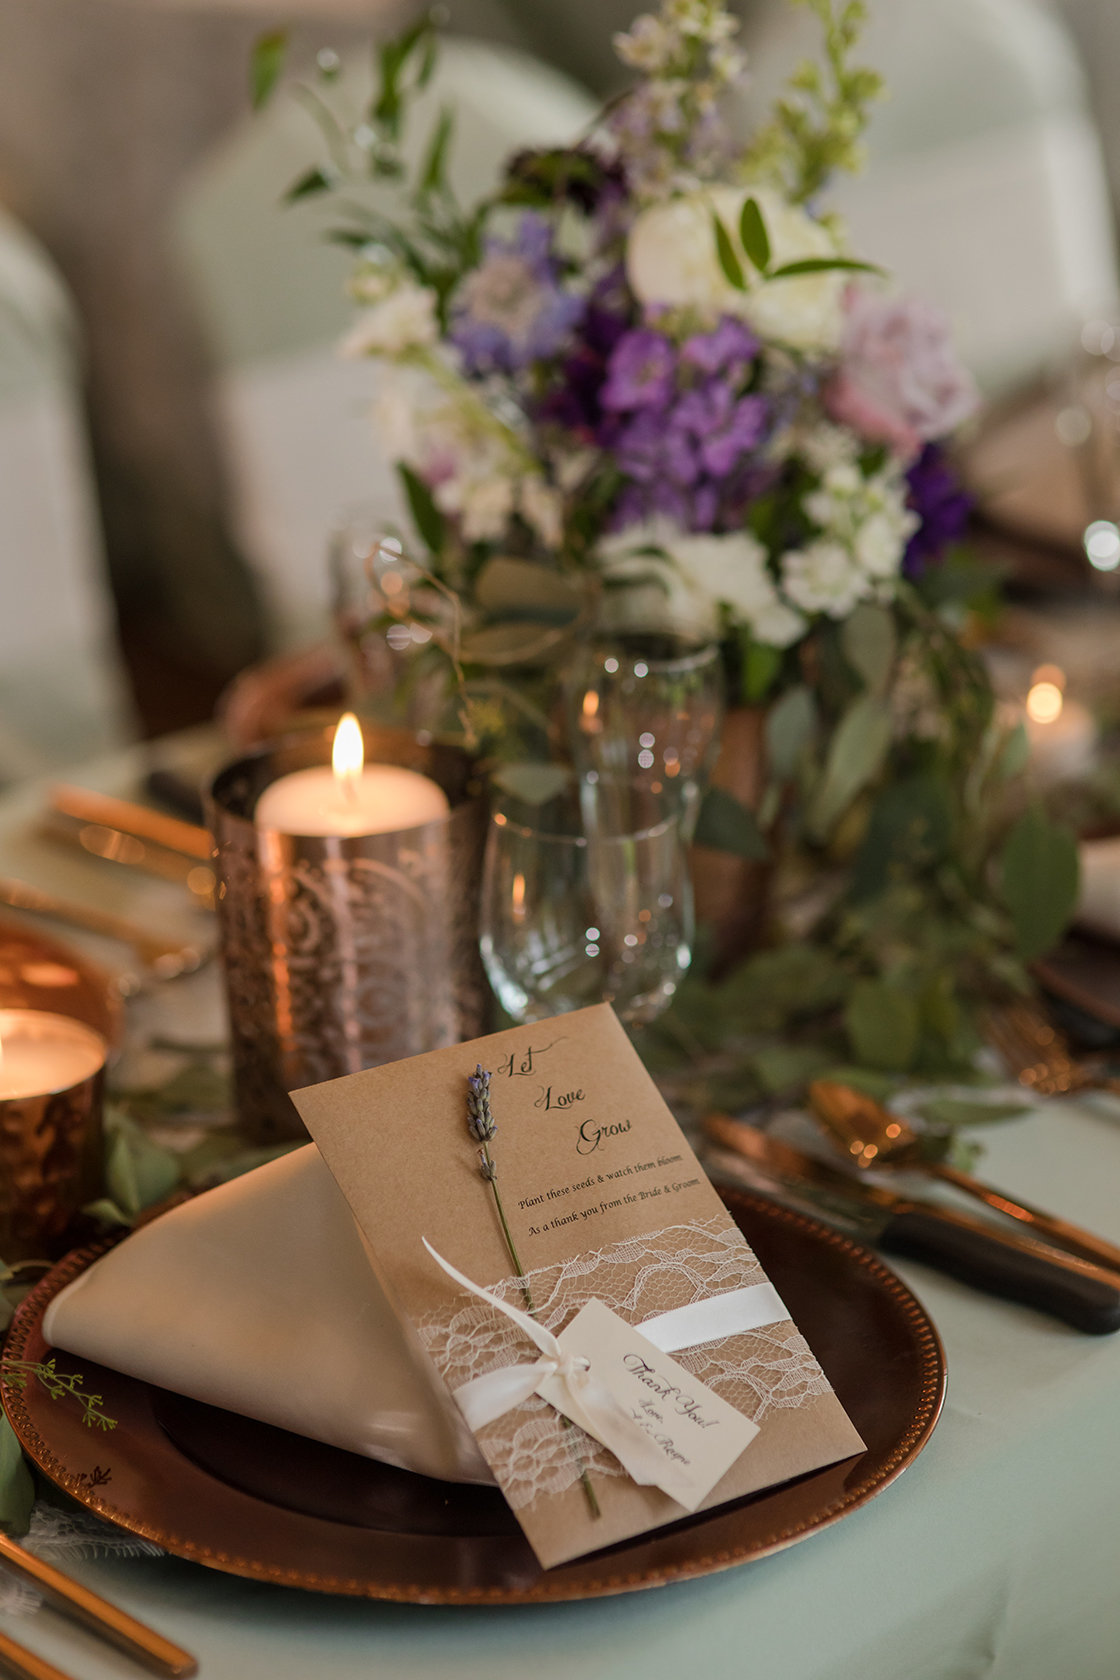 tablescape wedding with gift on plate